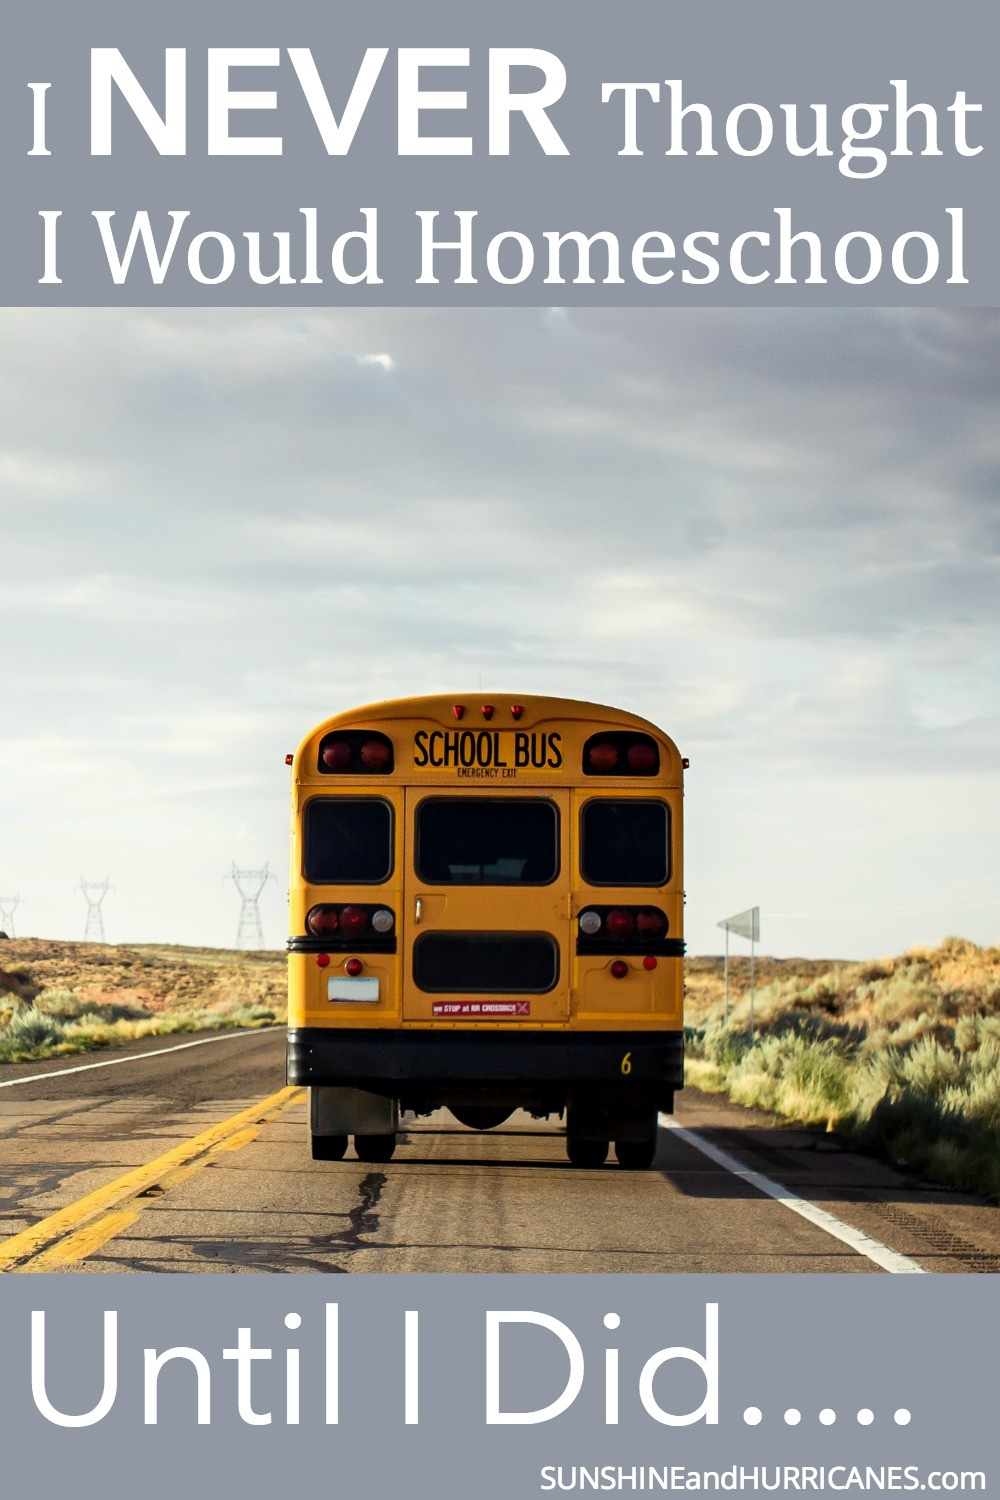 """Are you someone who says """"I Could Never Homeschool!"""" Well, that was me, right up until just a few days before we withdrew my middle school aged son and...you guessed it, started homeschooling him. It was something I NEVER thought I would do, but here is the why and the how in case you've been thinking about it seriously or like me, couldn't imagine it ever happening (but I've learned, never say never)"""